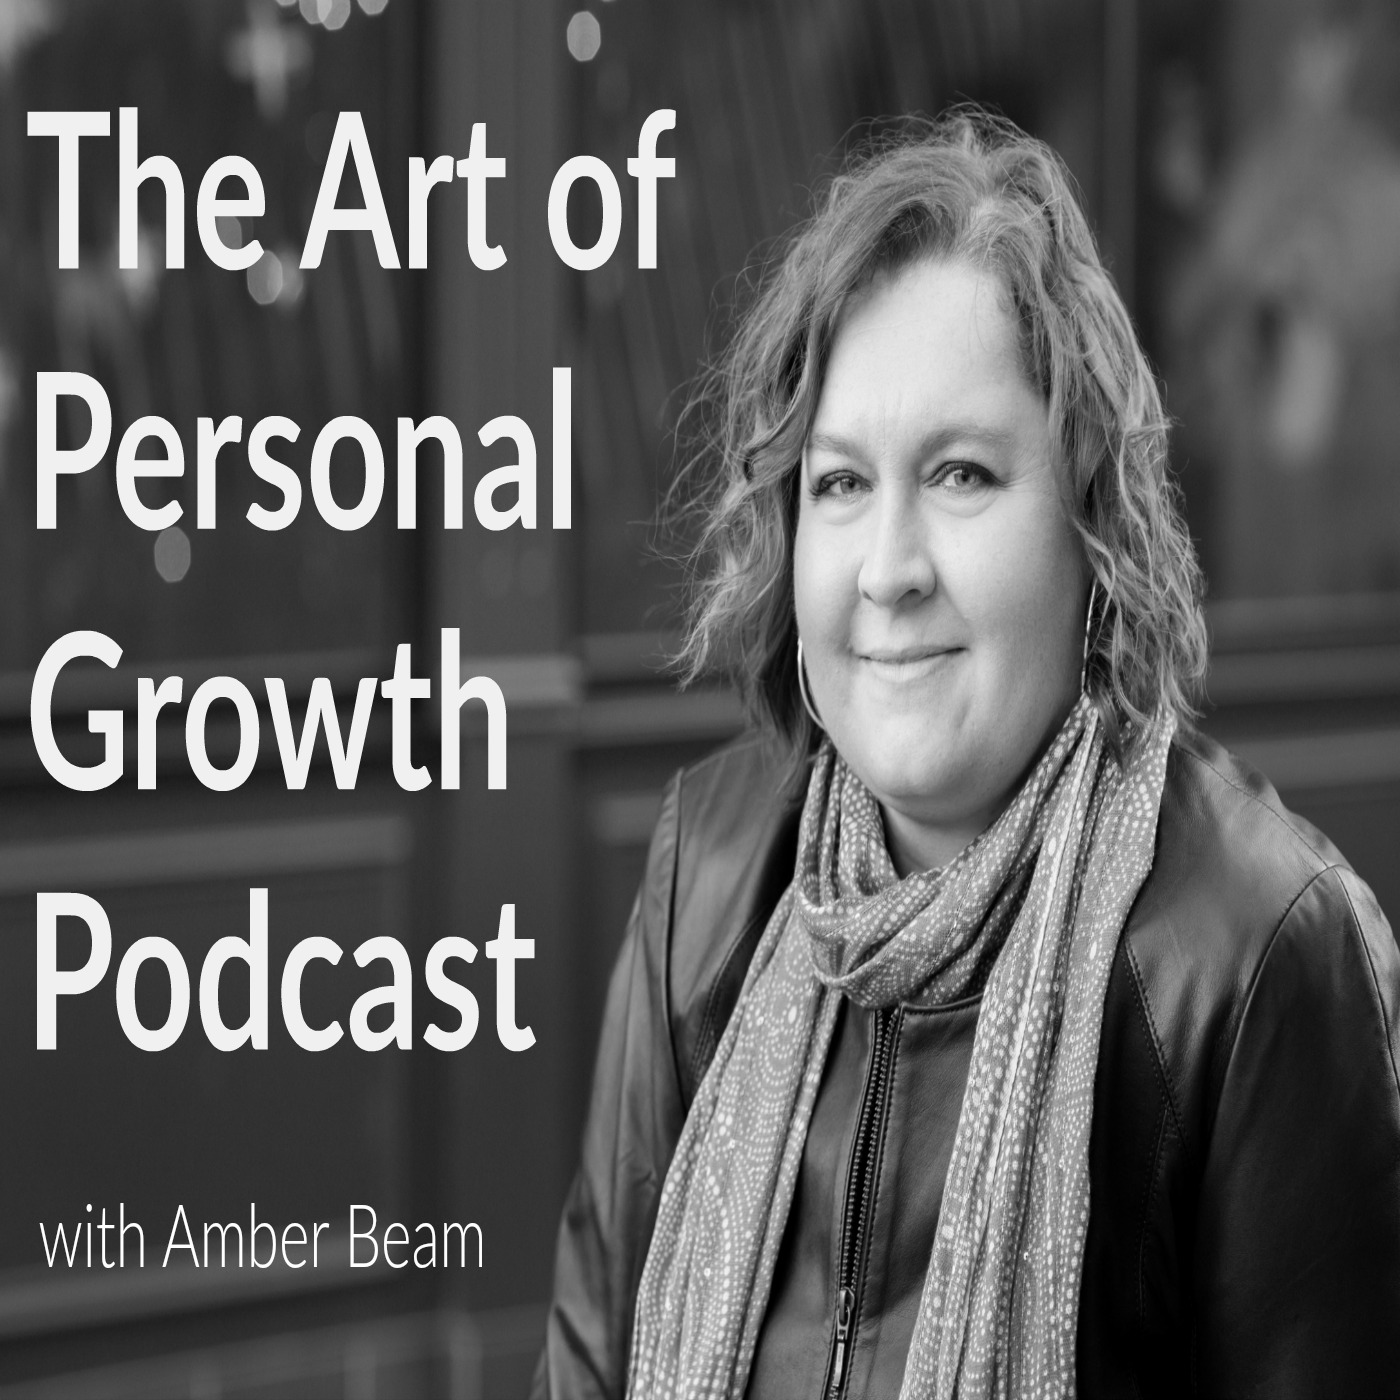 The Art of Personal Growth Podcast | Amber Beam